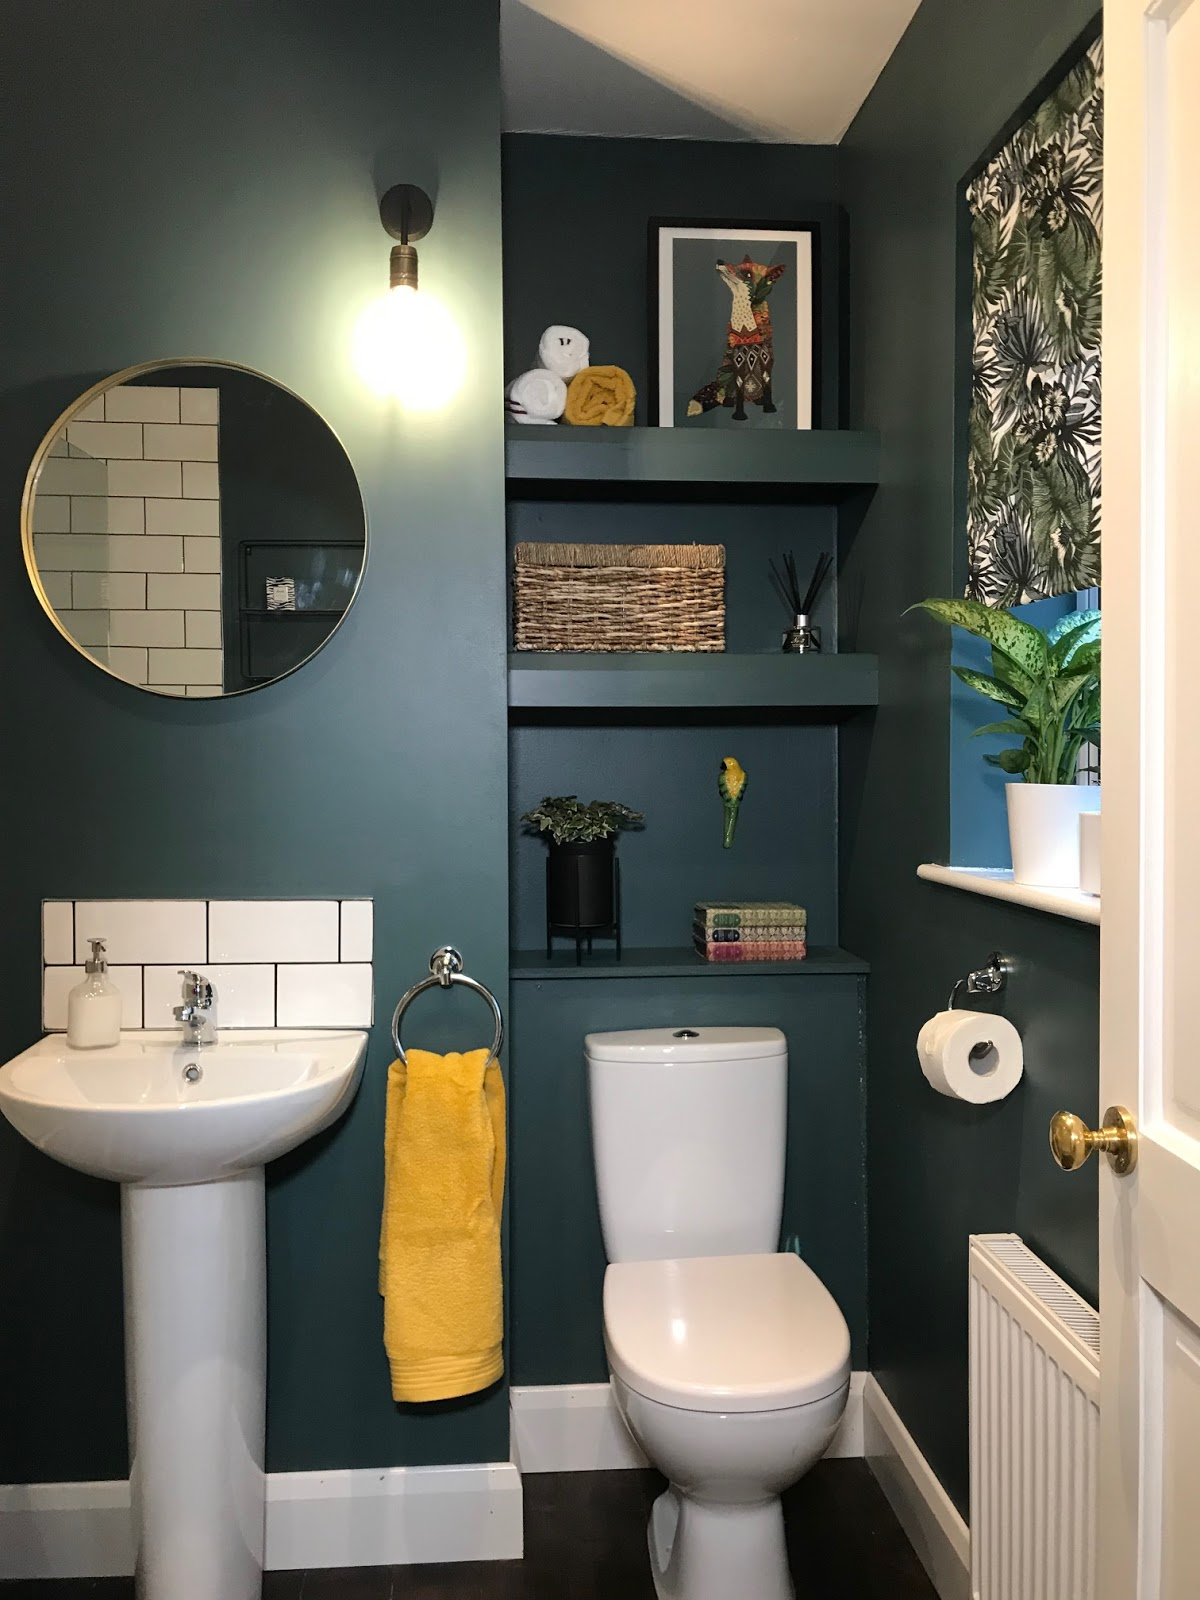 Styling is important in a bathroom